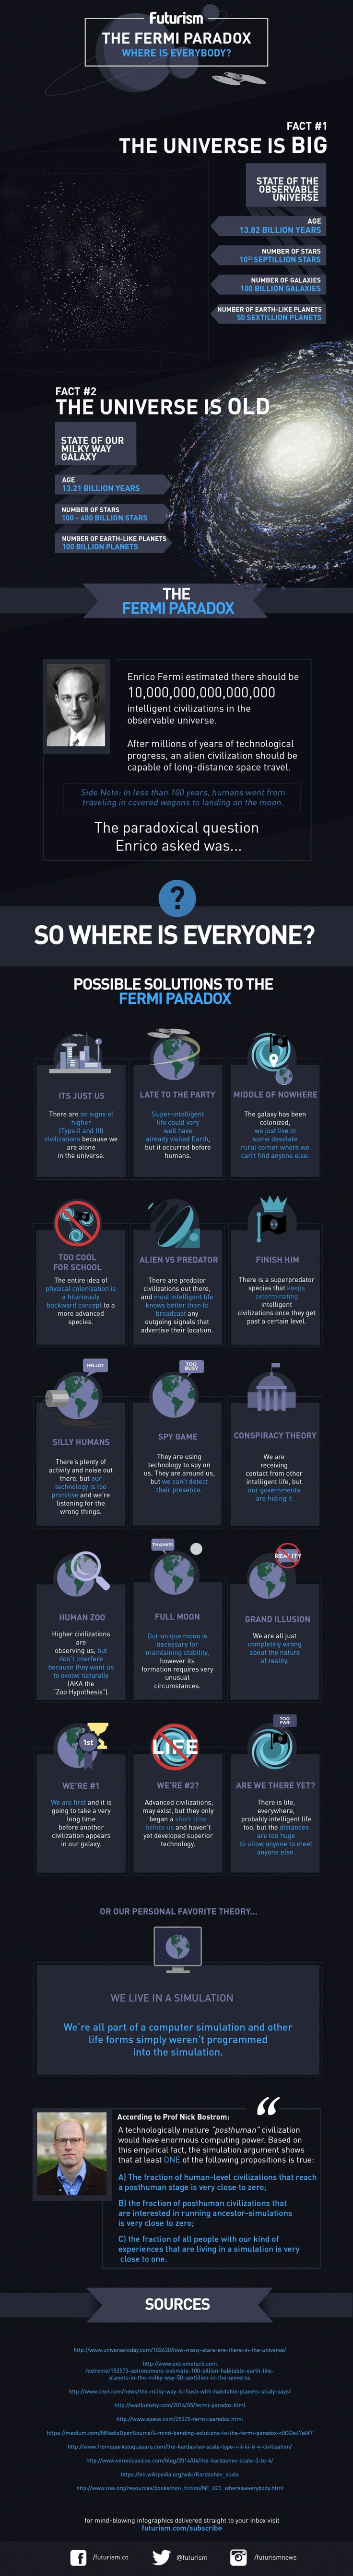 The age of the universe and its vast number of stars suggests that extraterrestrial life should be common. If that's the case, then where is everyone? In this infographic we explore some possibilities, ranging from the Zoo Hypothesis to the Technological Singularity